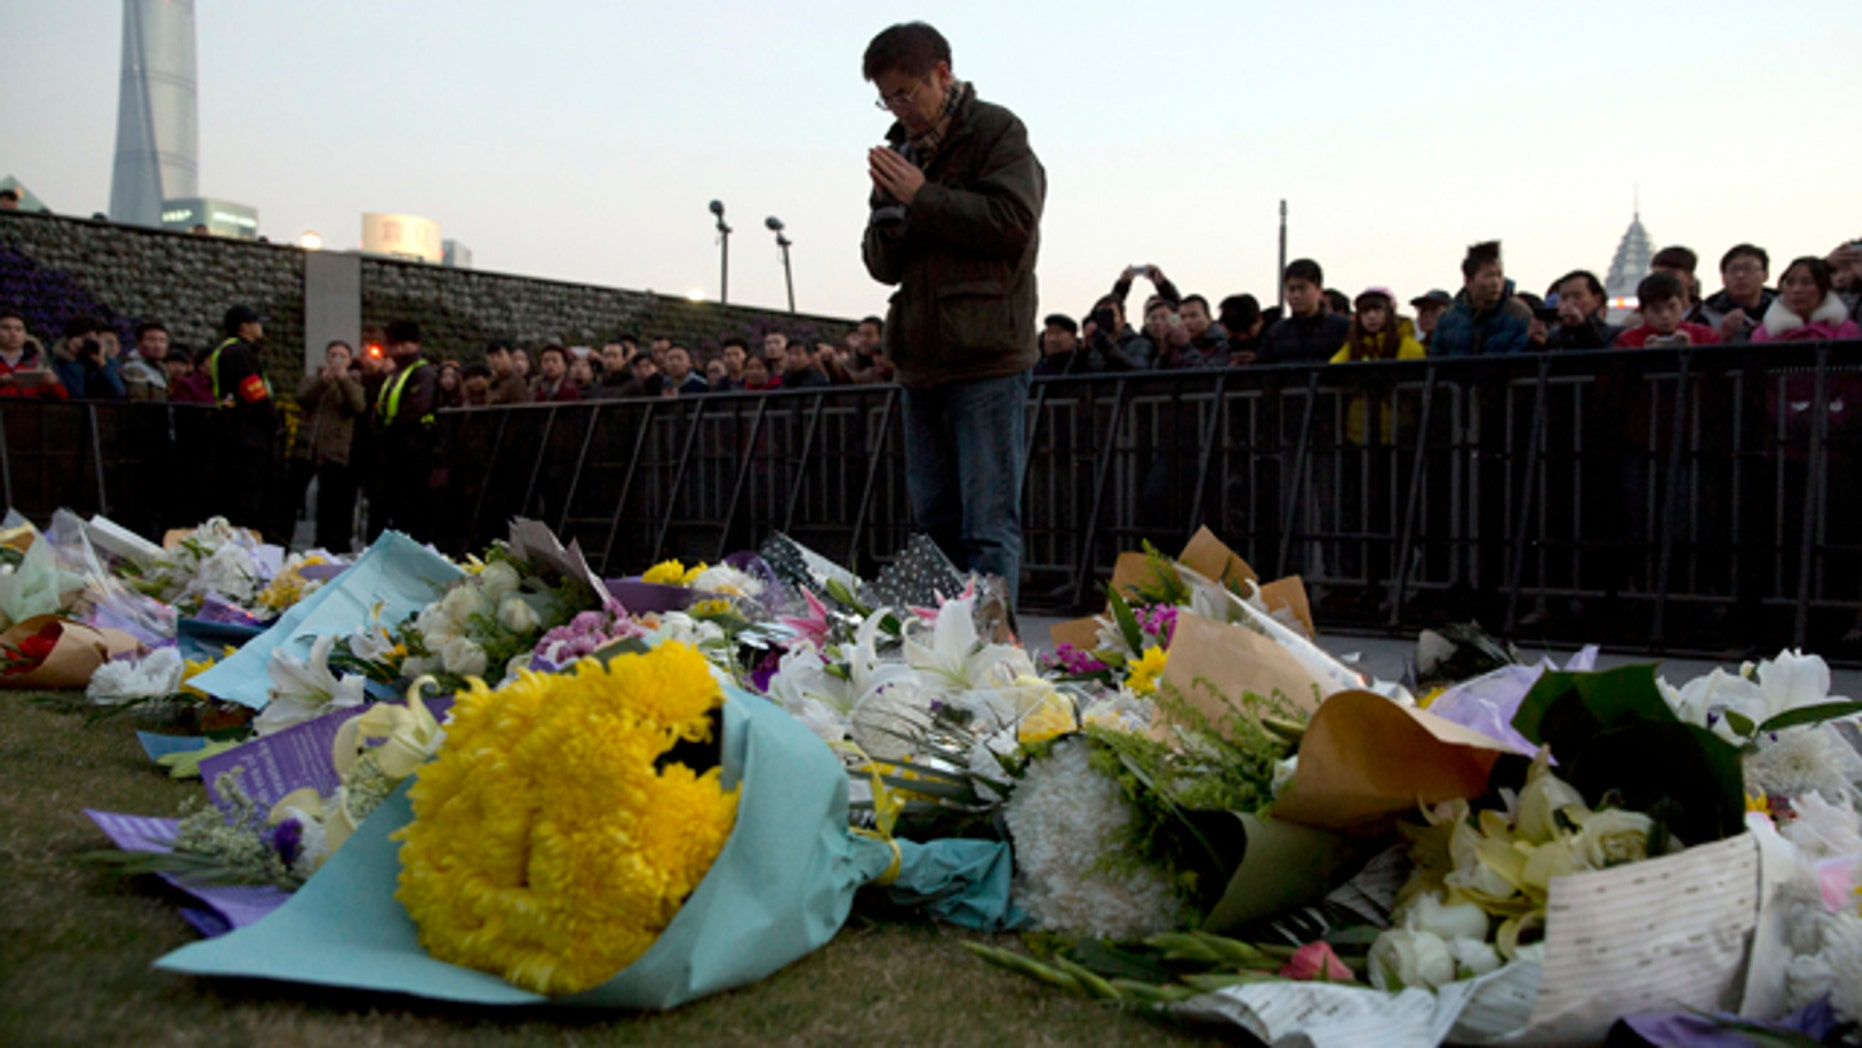 FILE - In this Thursday, Jan. 1, 2015 file photo, a man prays after laying flowers at the site of a New Years Eve deadly stampede in Shanghai. (AP Photo/Ng Han Guan, File)